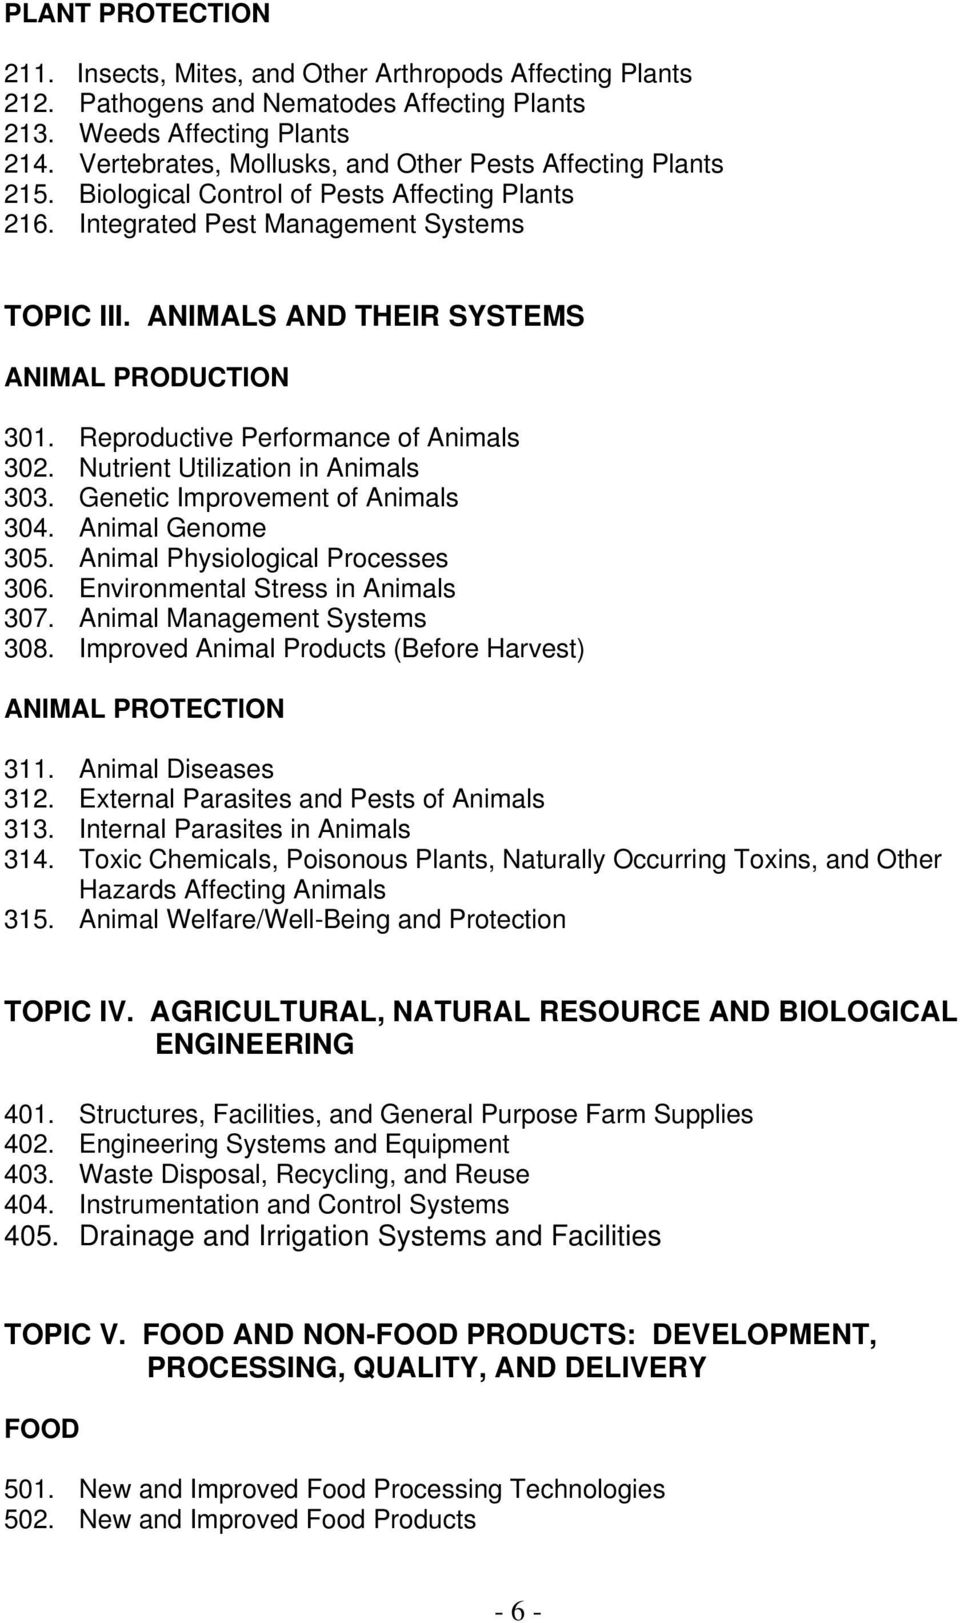 ANIMALS AND THEIR SYSTEMS ANIMAL PRODUCTION 301. Reproductive Performance of Animals 302. Nutrient Utilization in Animals 303. Genetic Improvement of Animals 304. Animal Genome 305.